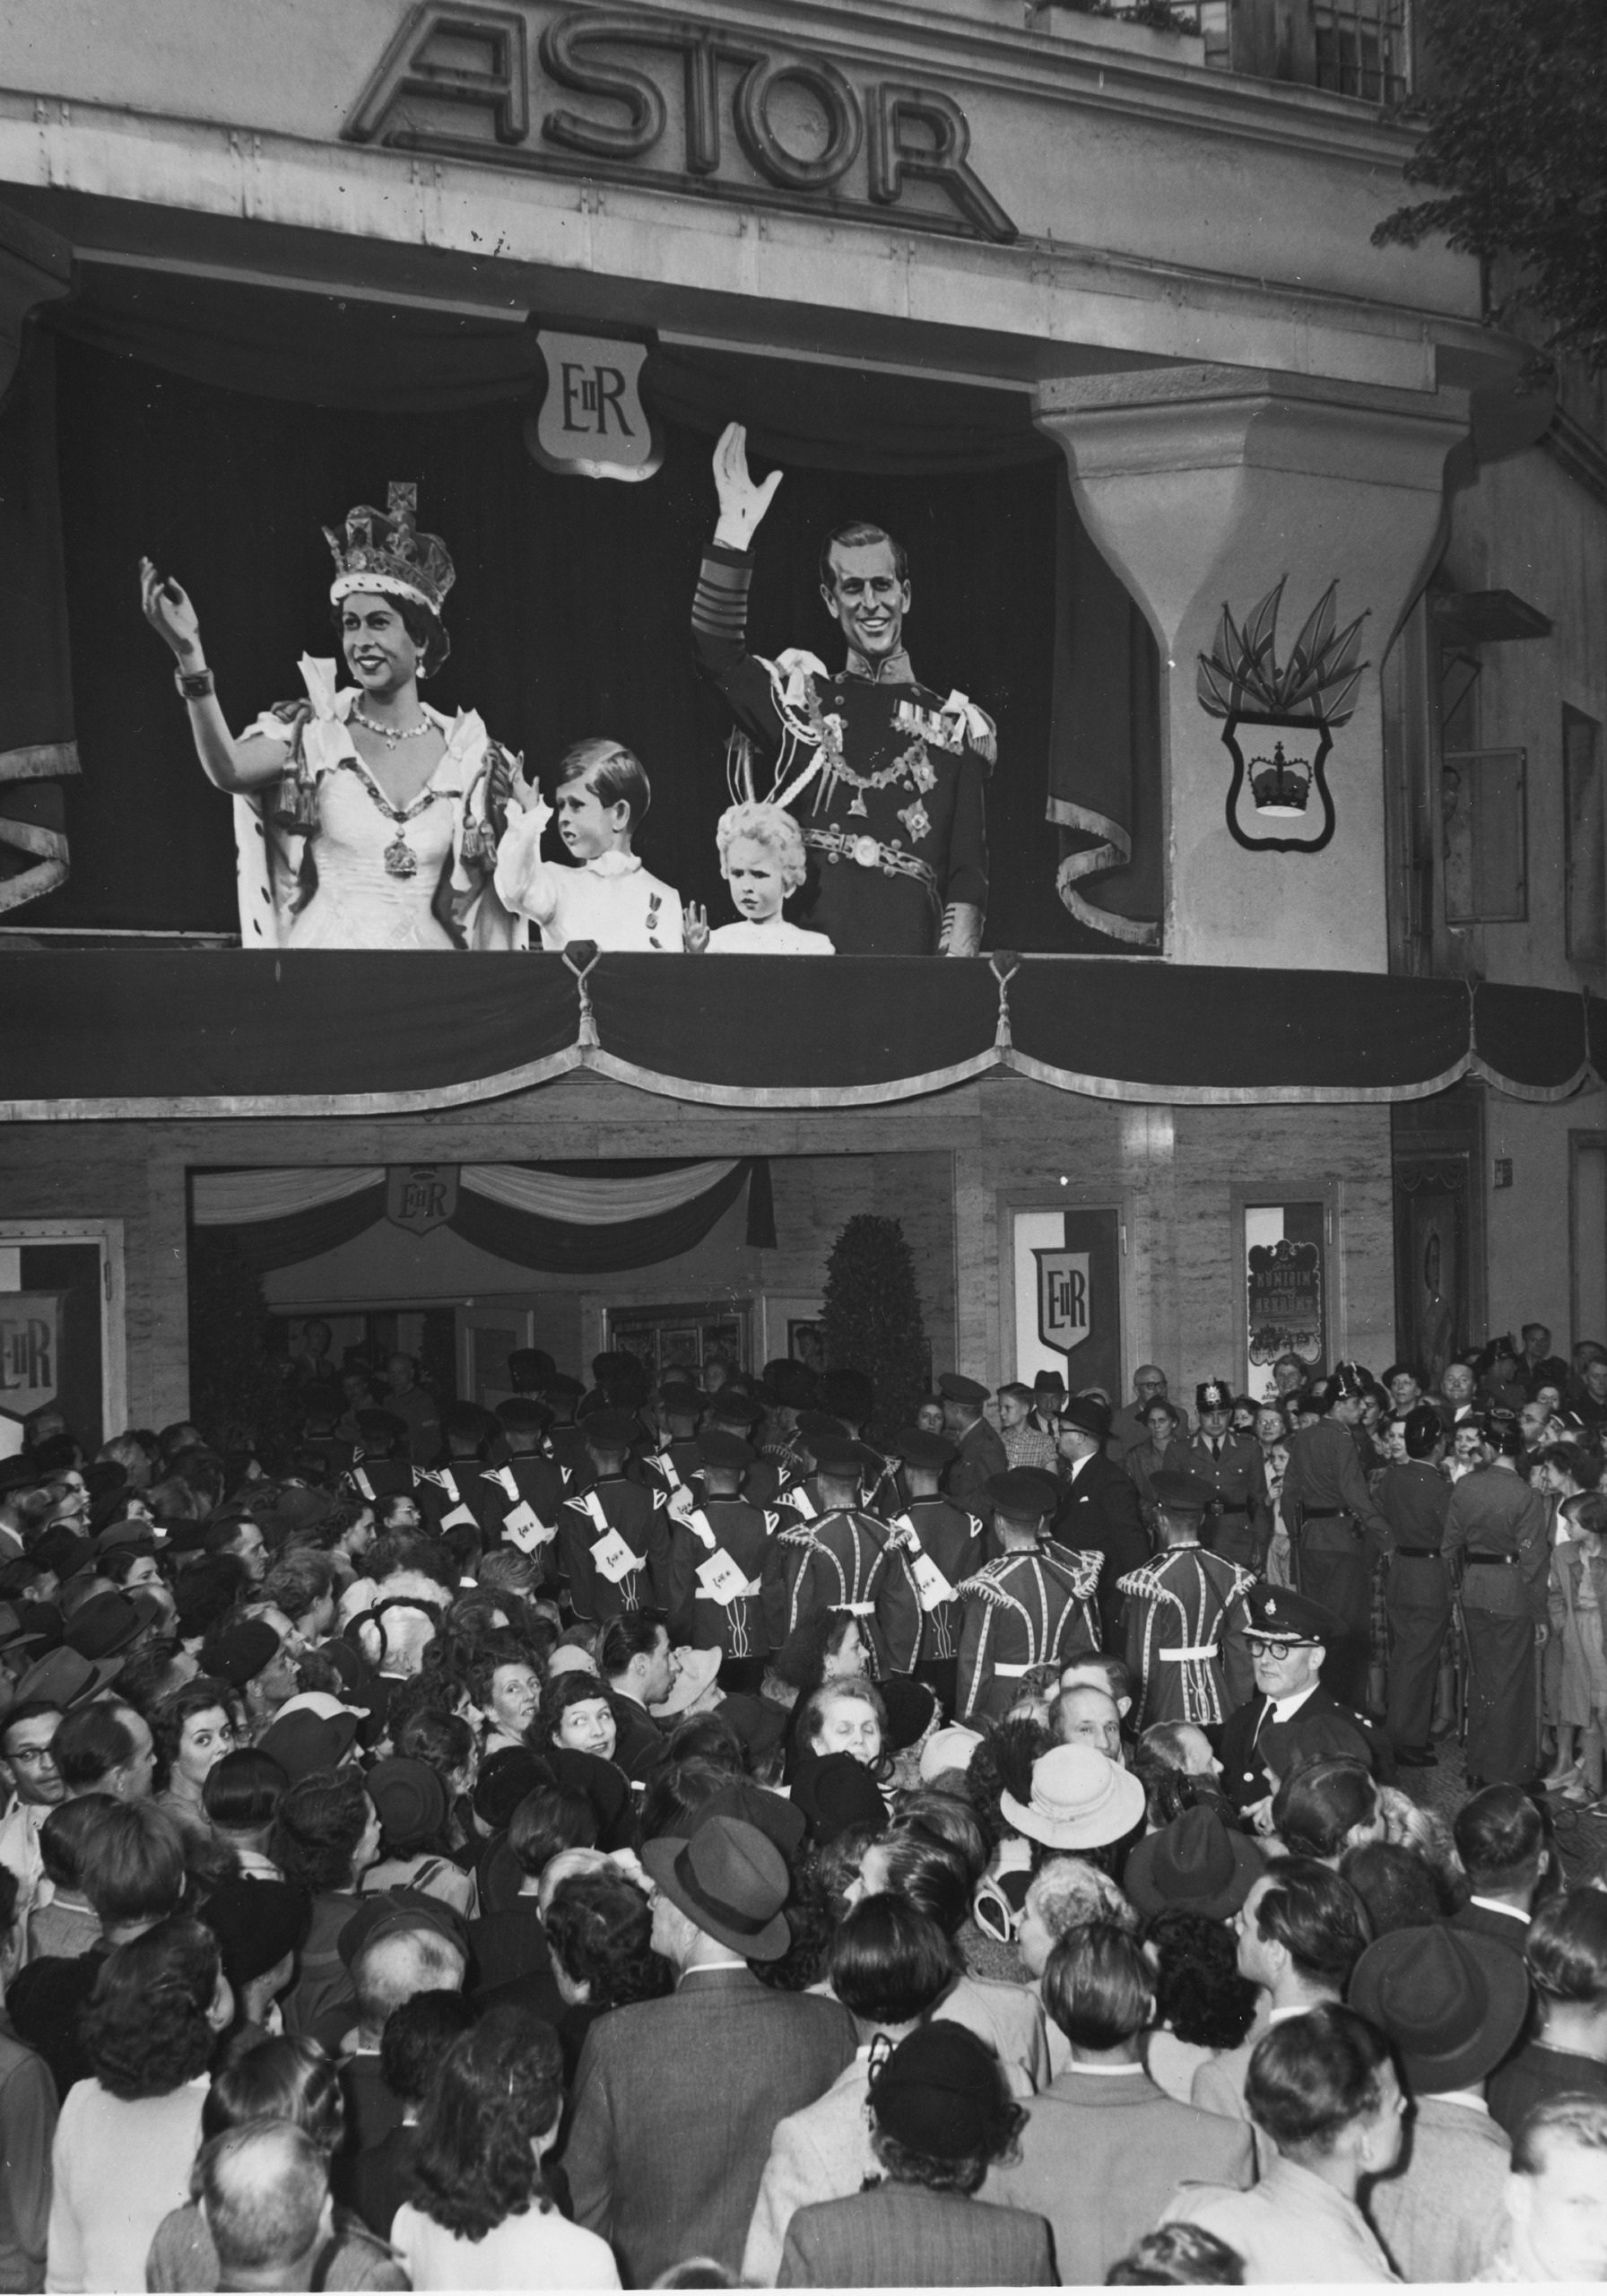 Black and white photo: a crowd gathered outside the cinema with a poster of the royal family of the UK on the façade